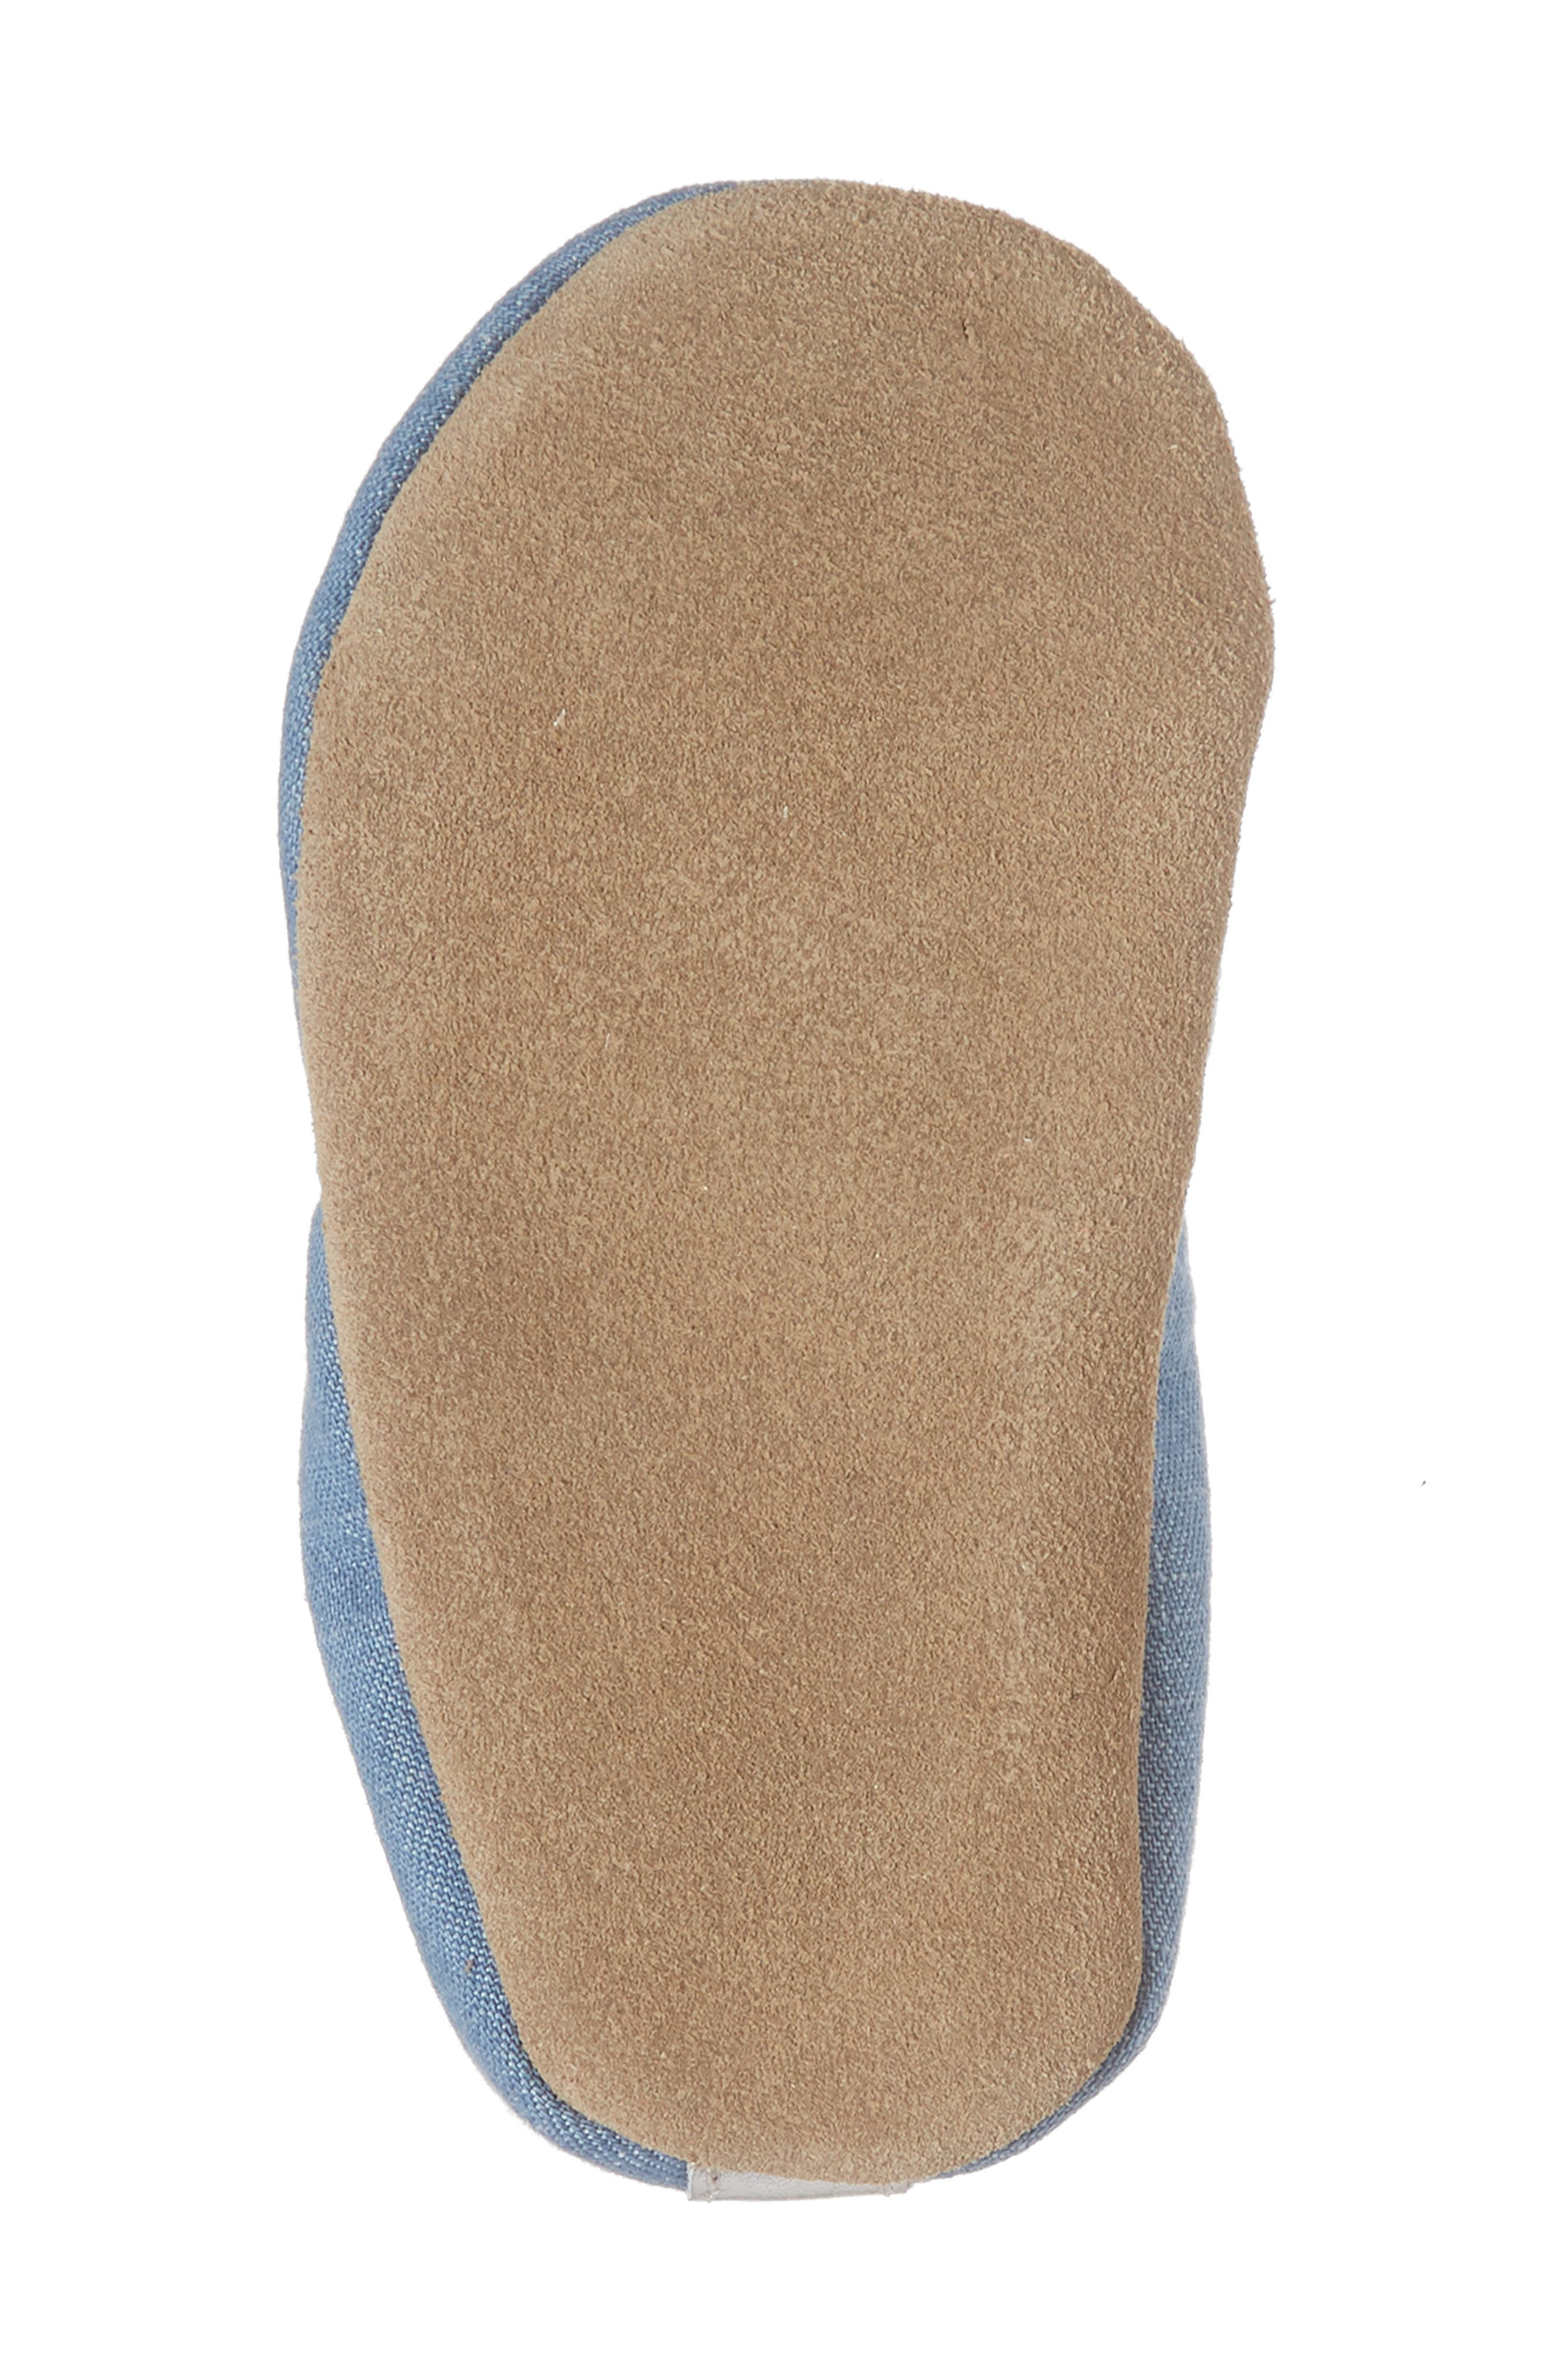 Peace Out Moccasin Crib Shoe,                             Alternate thumbnail 6, color,                             BLUE